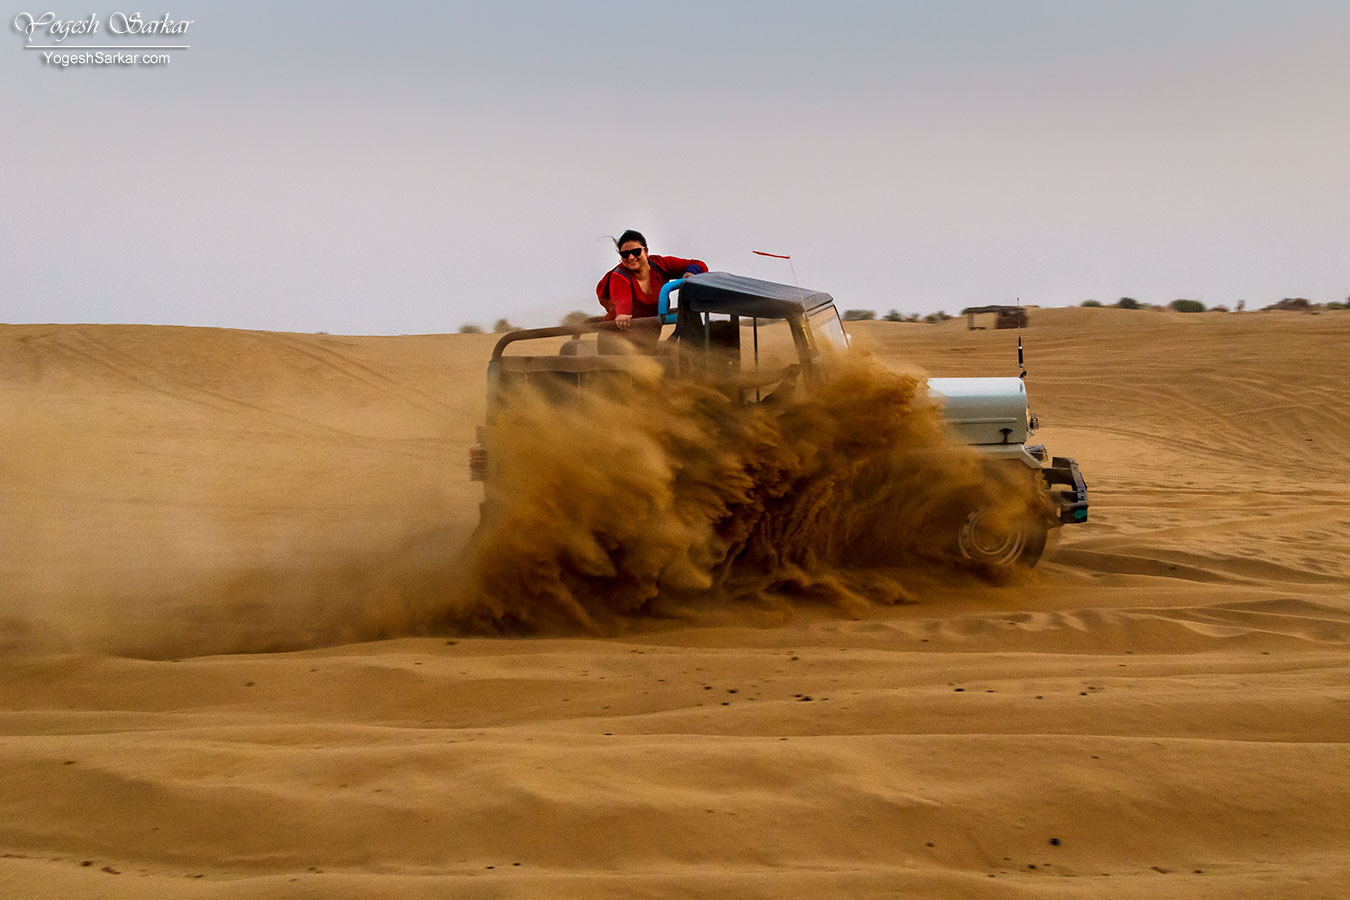 72-jeep-safari-sam-sand-dunes.jpg